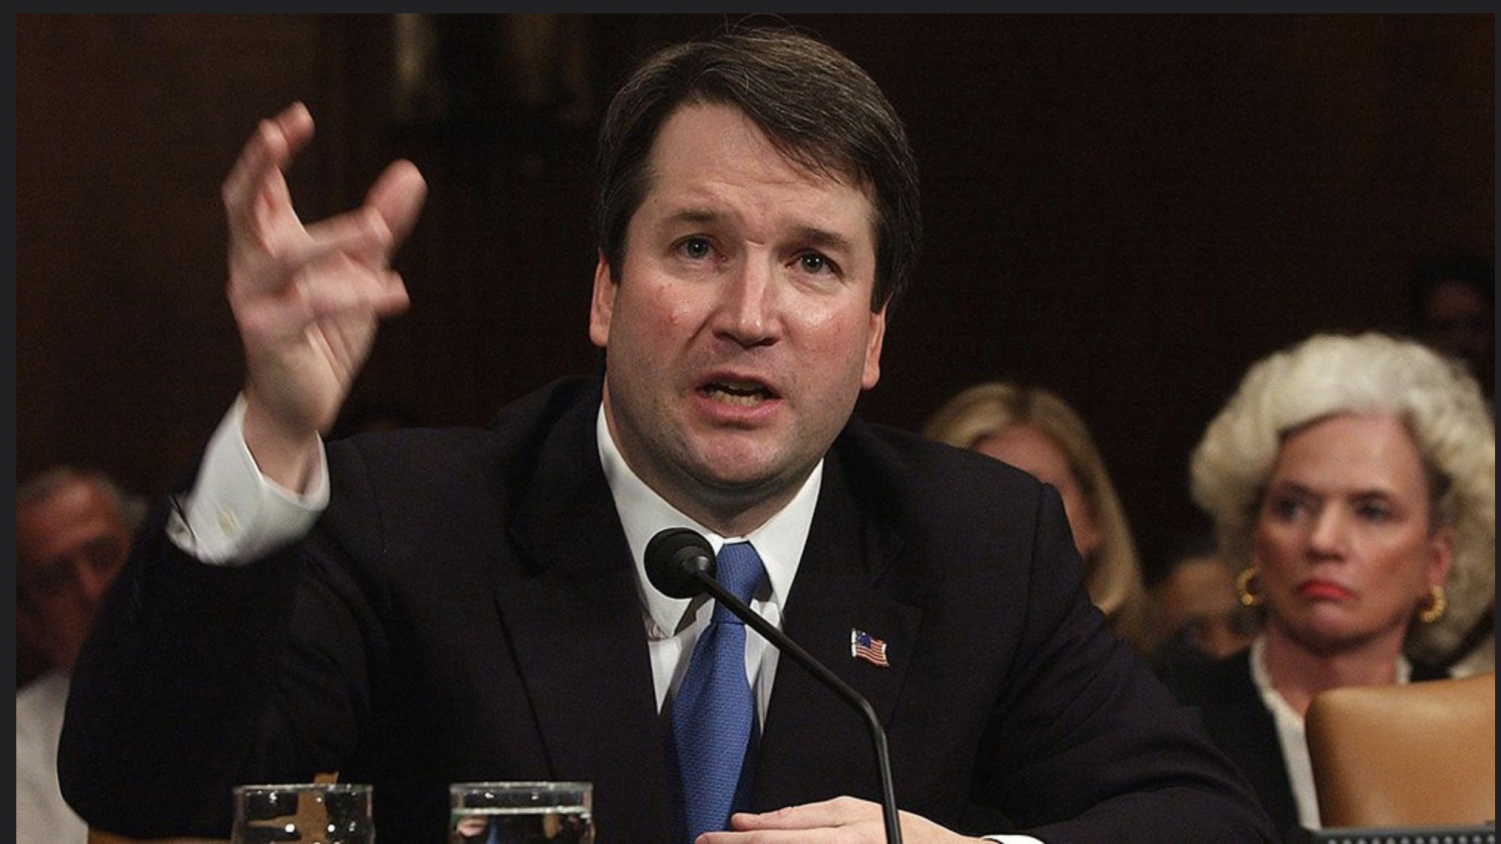 Kavanaugh testifying in front of the Senate Judiciary Committee.